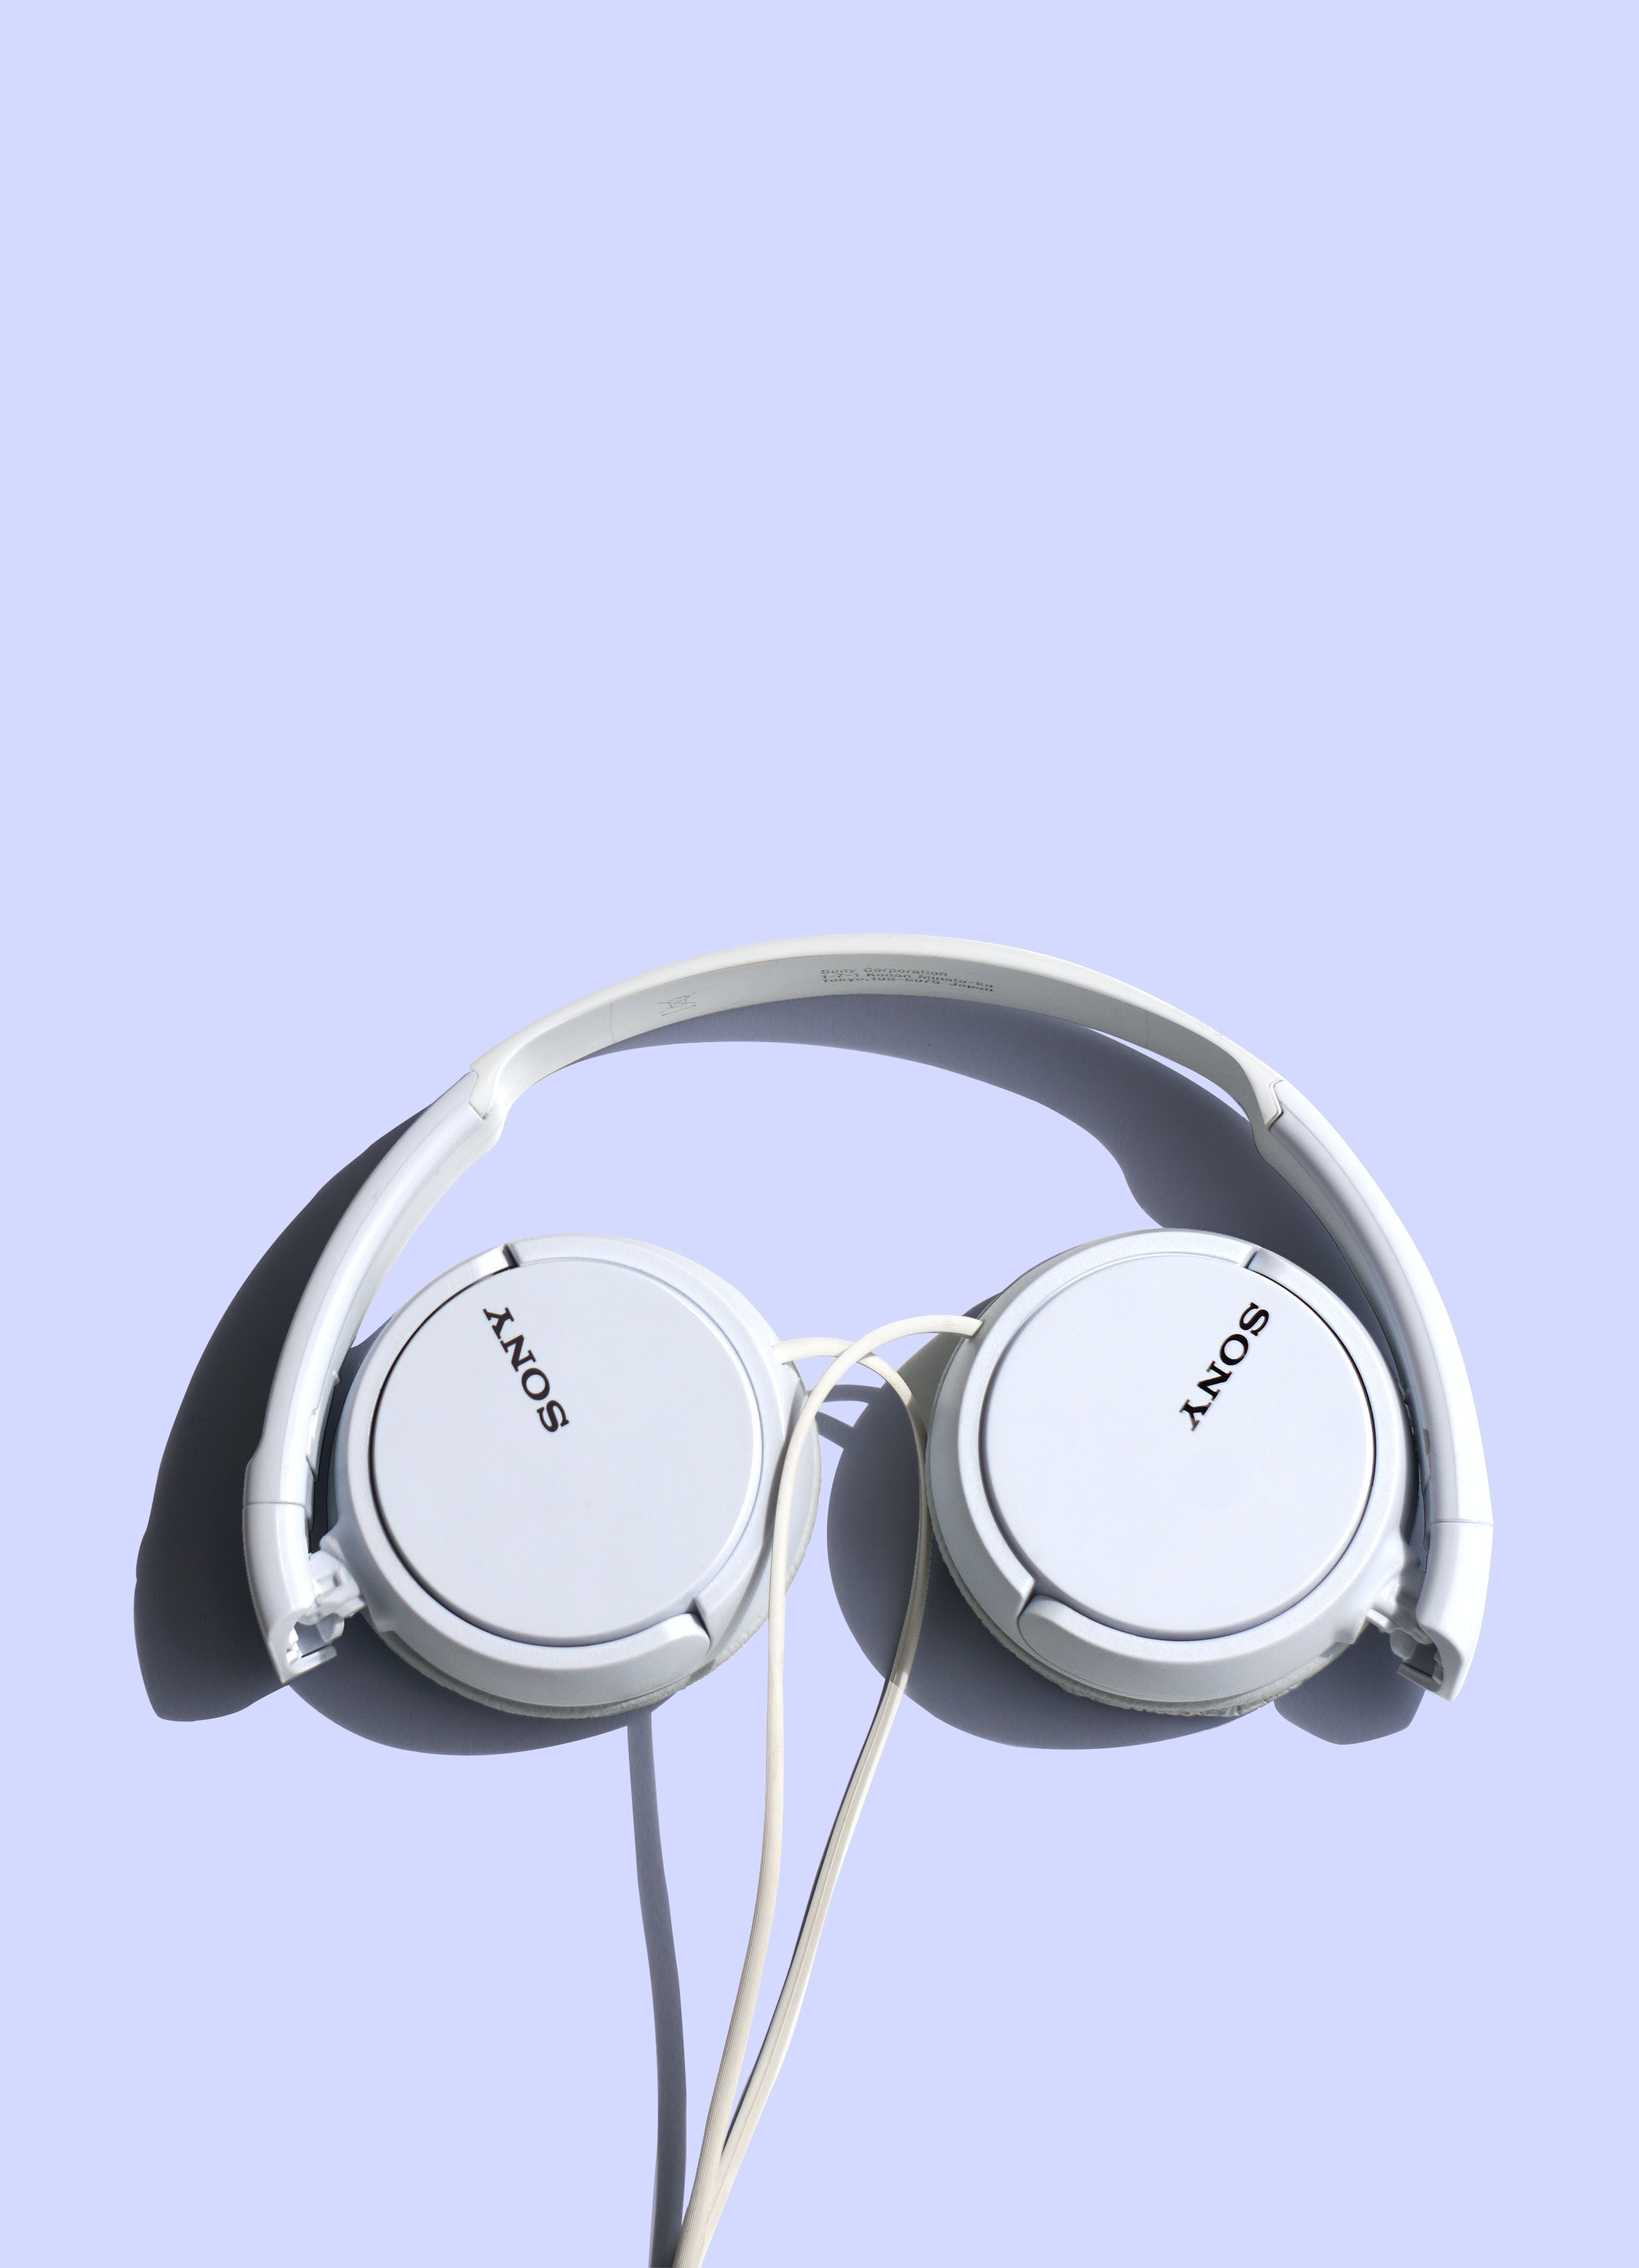 A pair of white headphones on a violet background